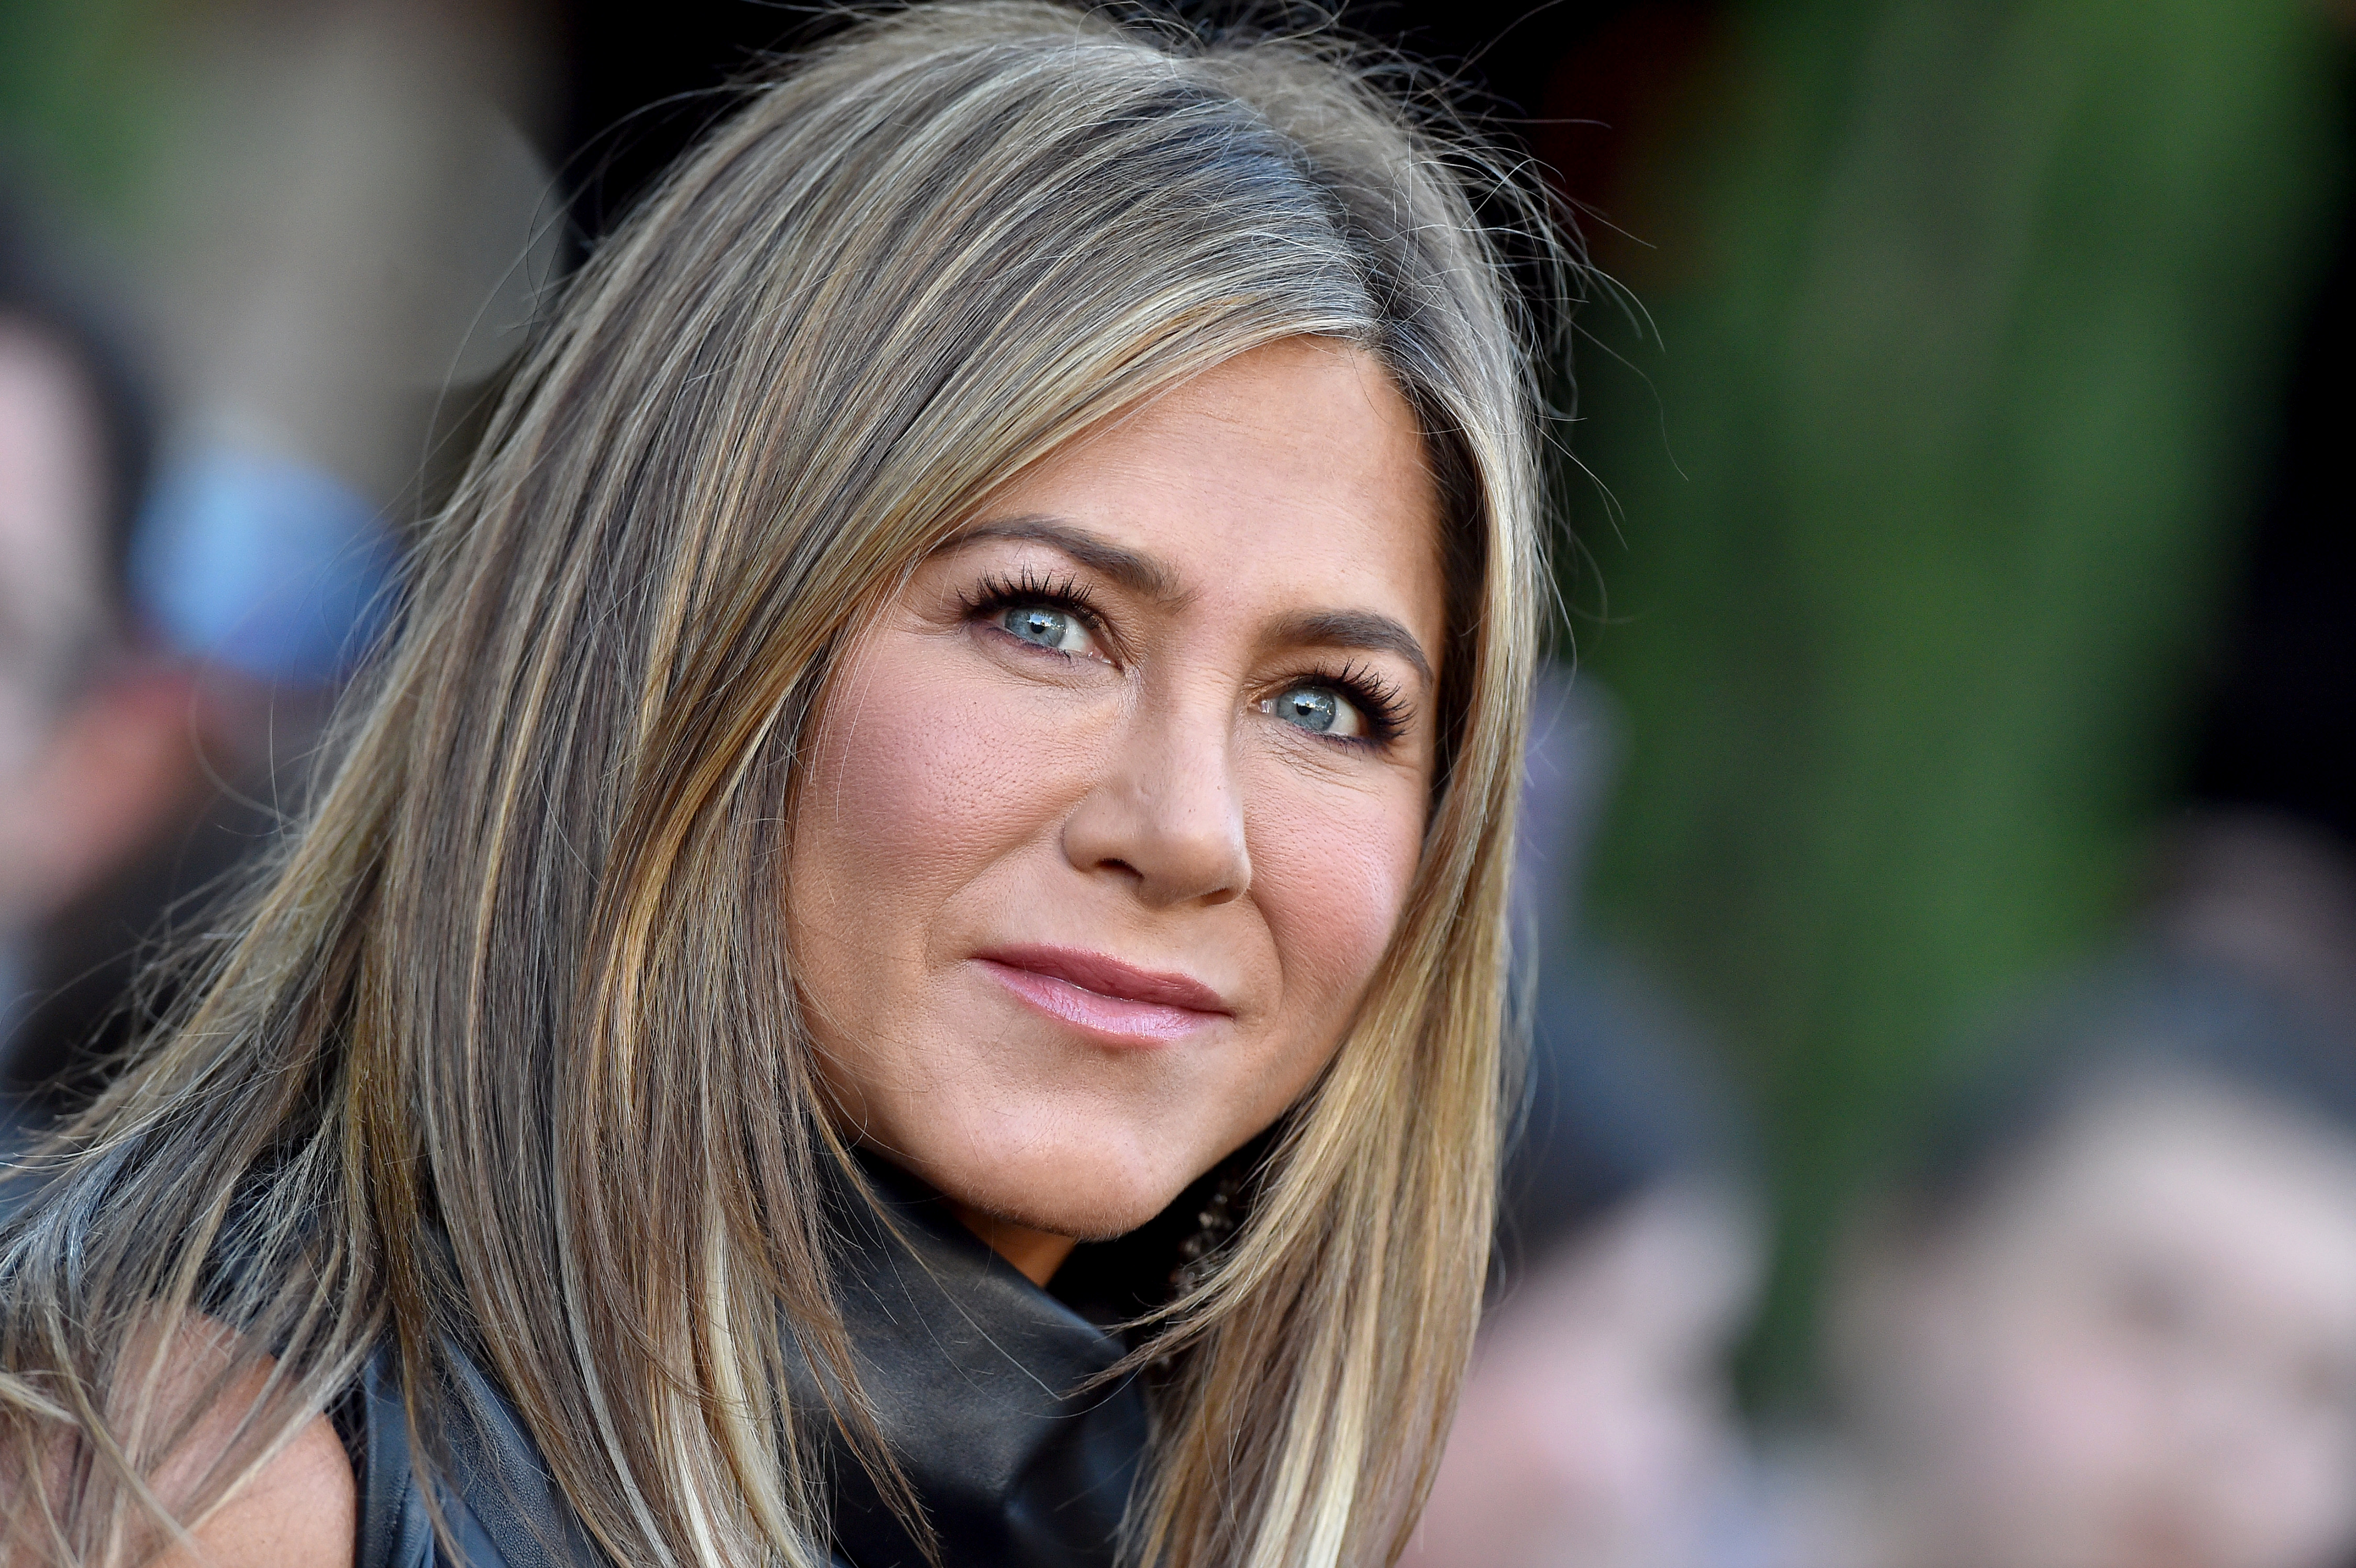 """WESTWOOD, CALIFORNIA - JUNE 10: Jennifer Aniston attends the LA Premiere of Netflix's """"Murder Mystery"""" at Regency Village Theatre on June 10, 2019 in Westwood, California. (Photo by Axelle/Bauer-Griffin/FilmMagic)"""